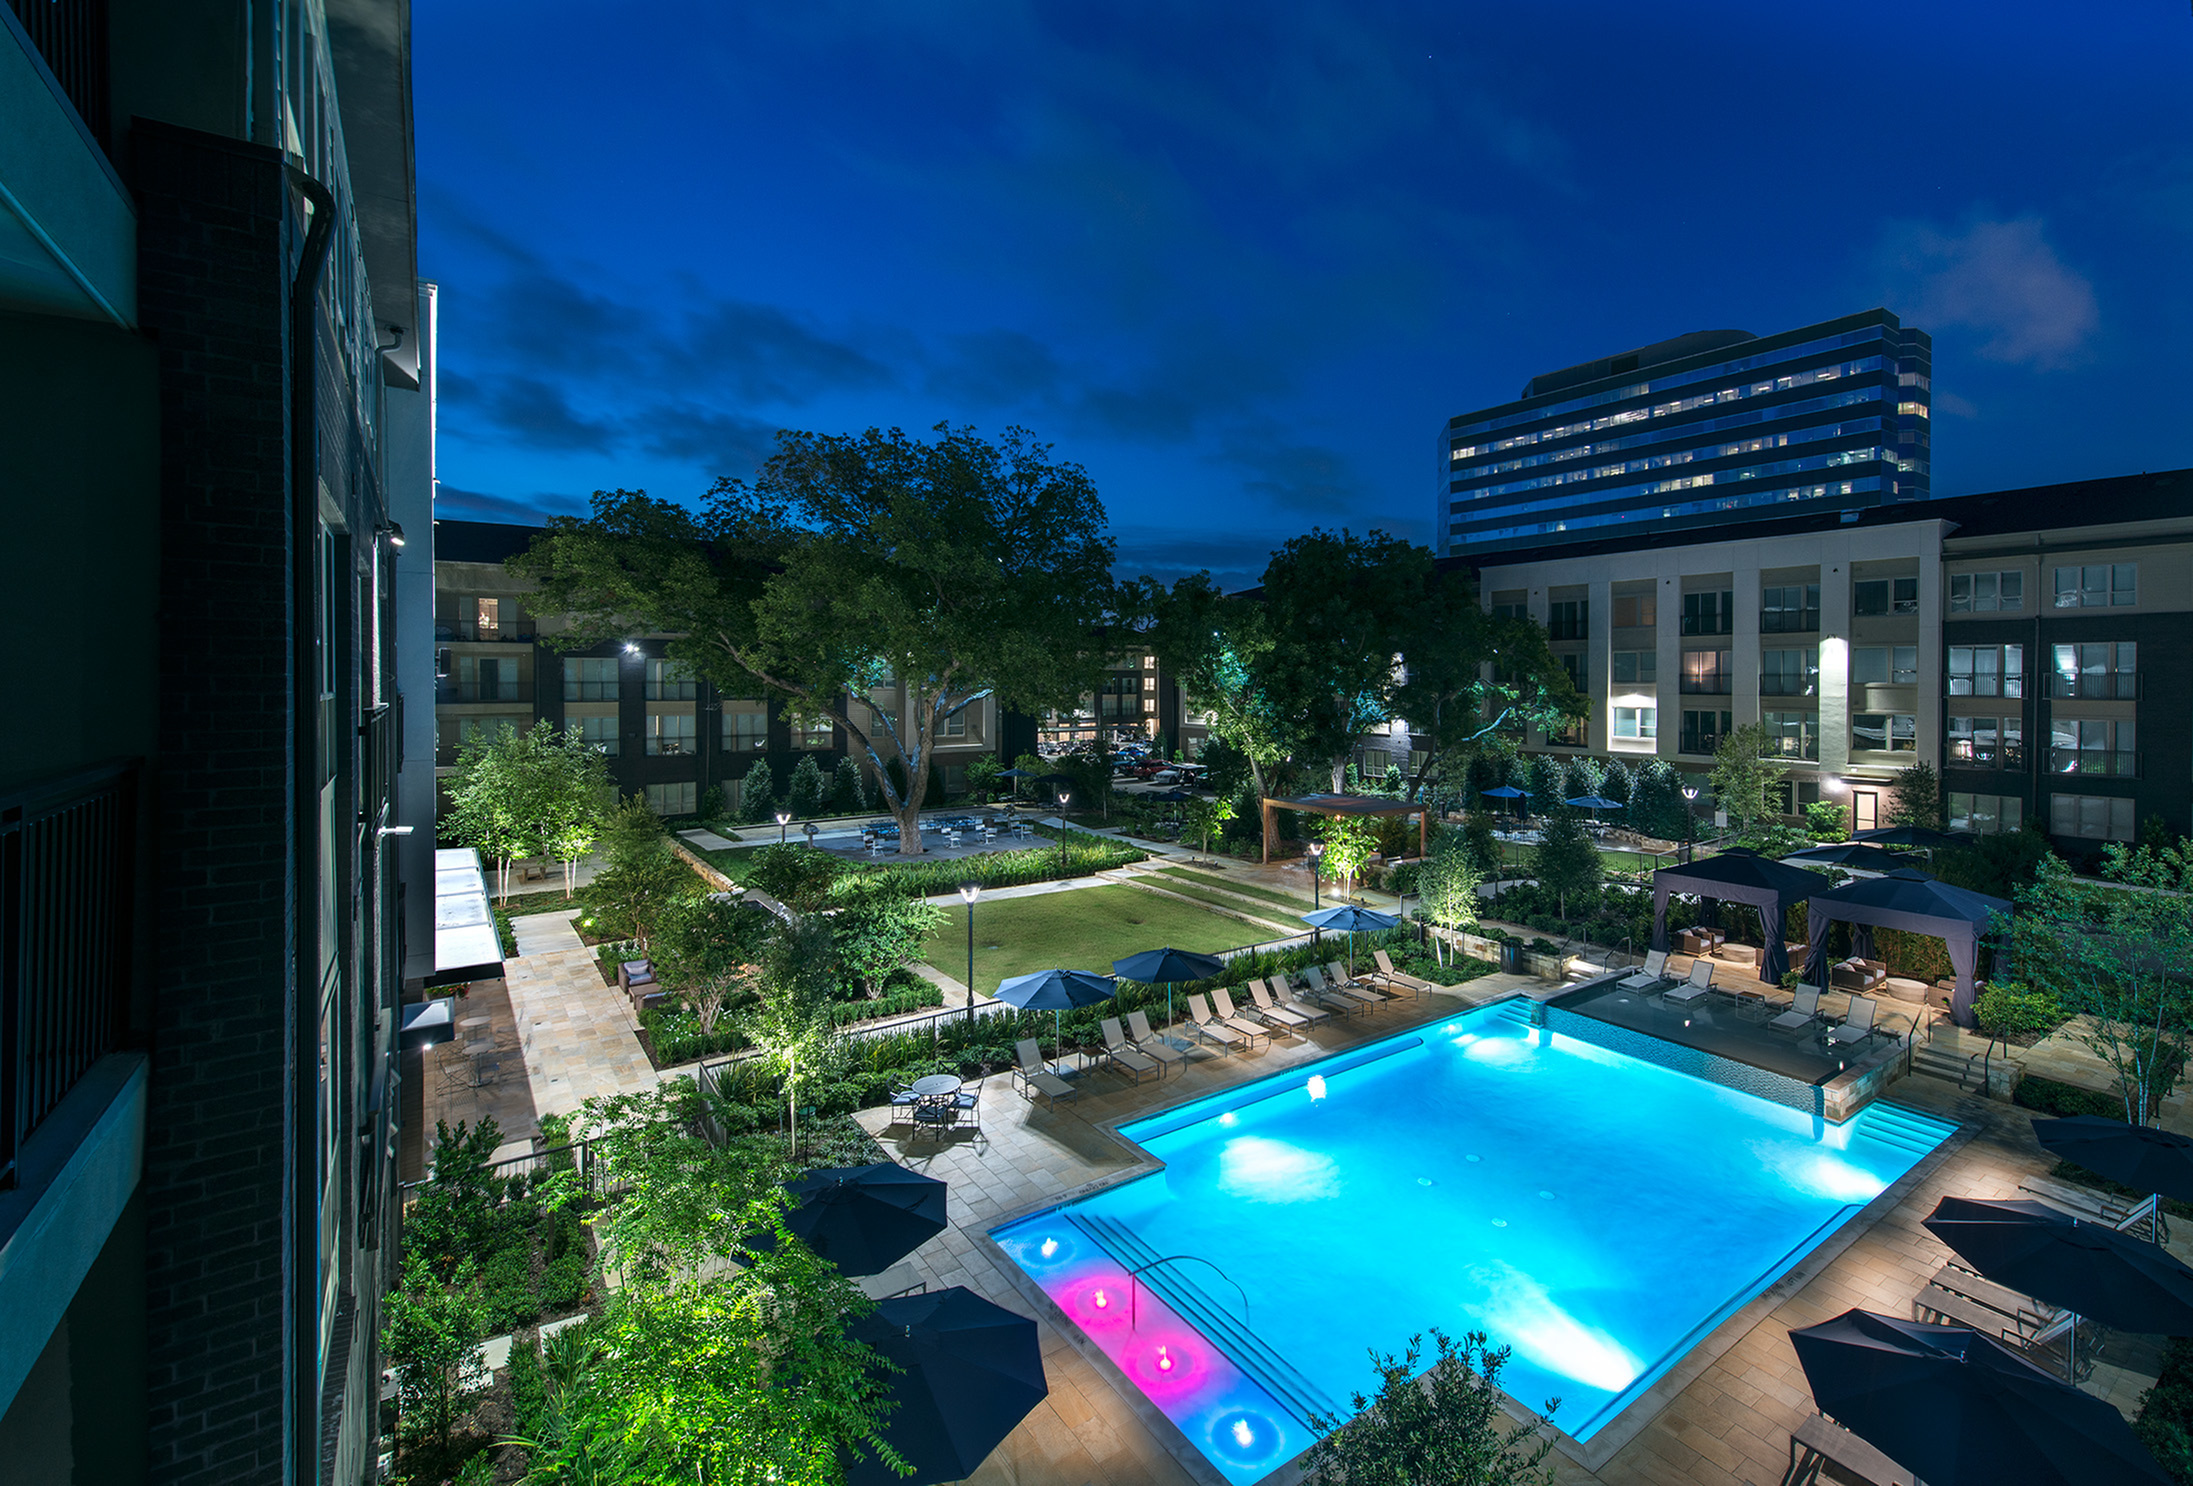 Image of Pool courtyard with resort-style pool for Hanover Midtown Park